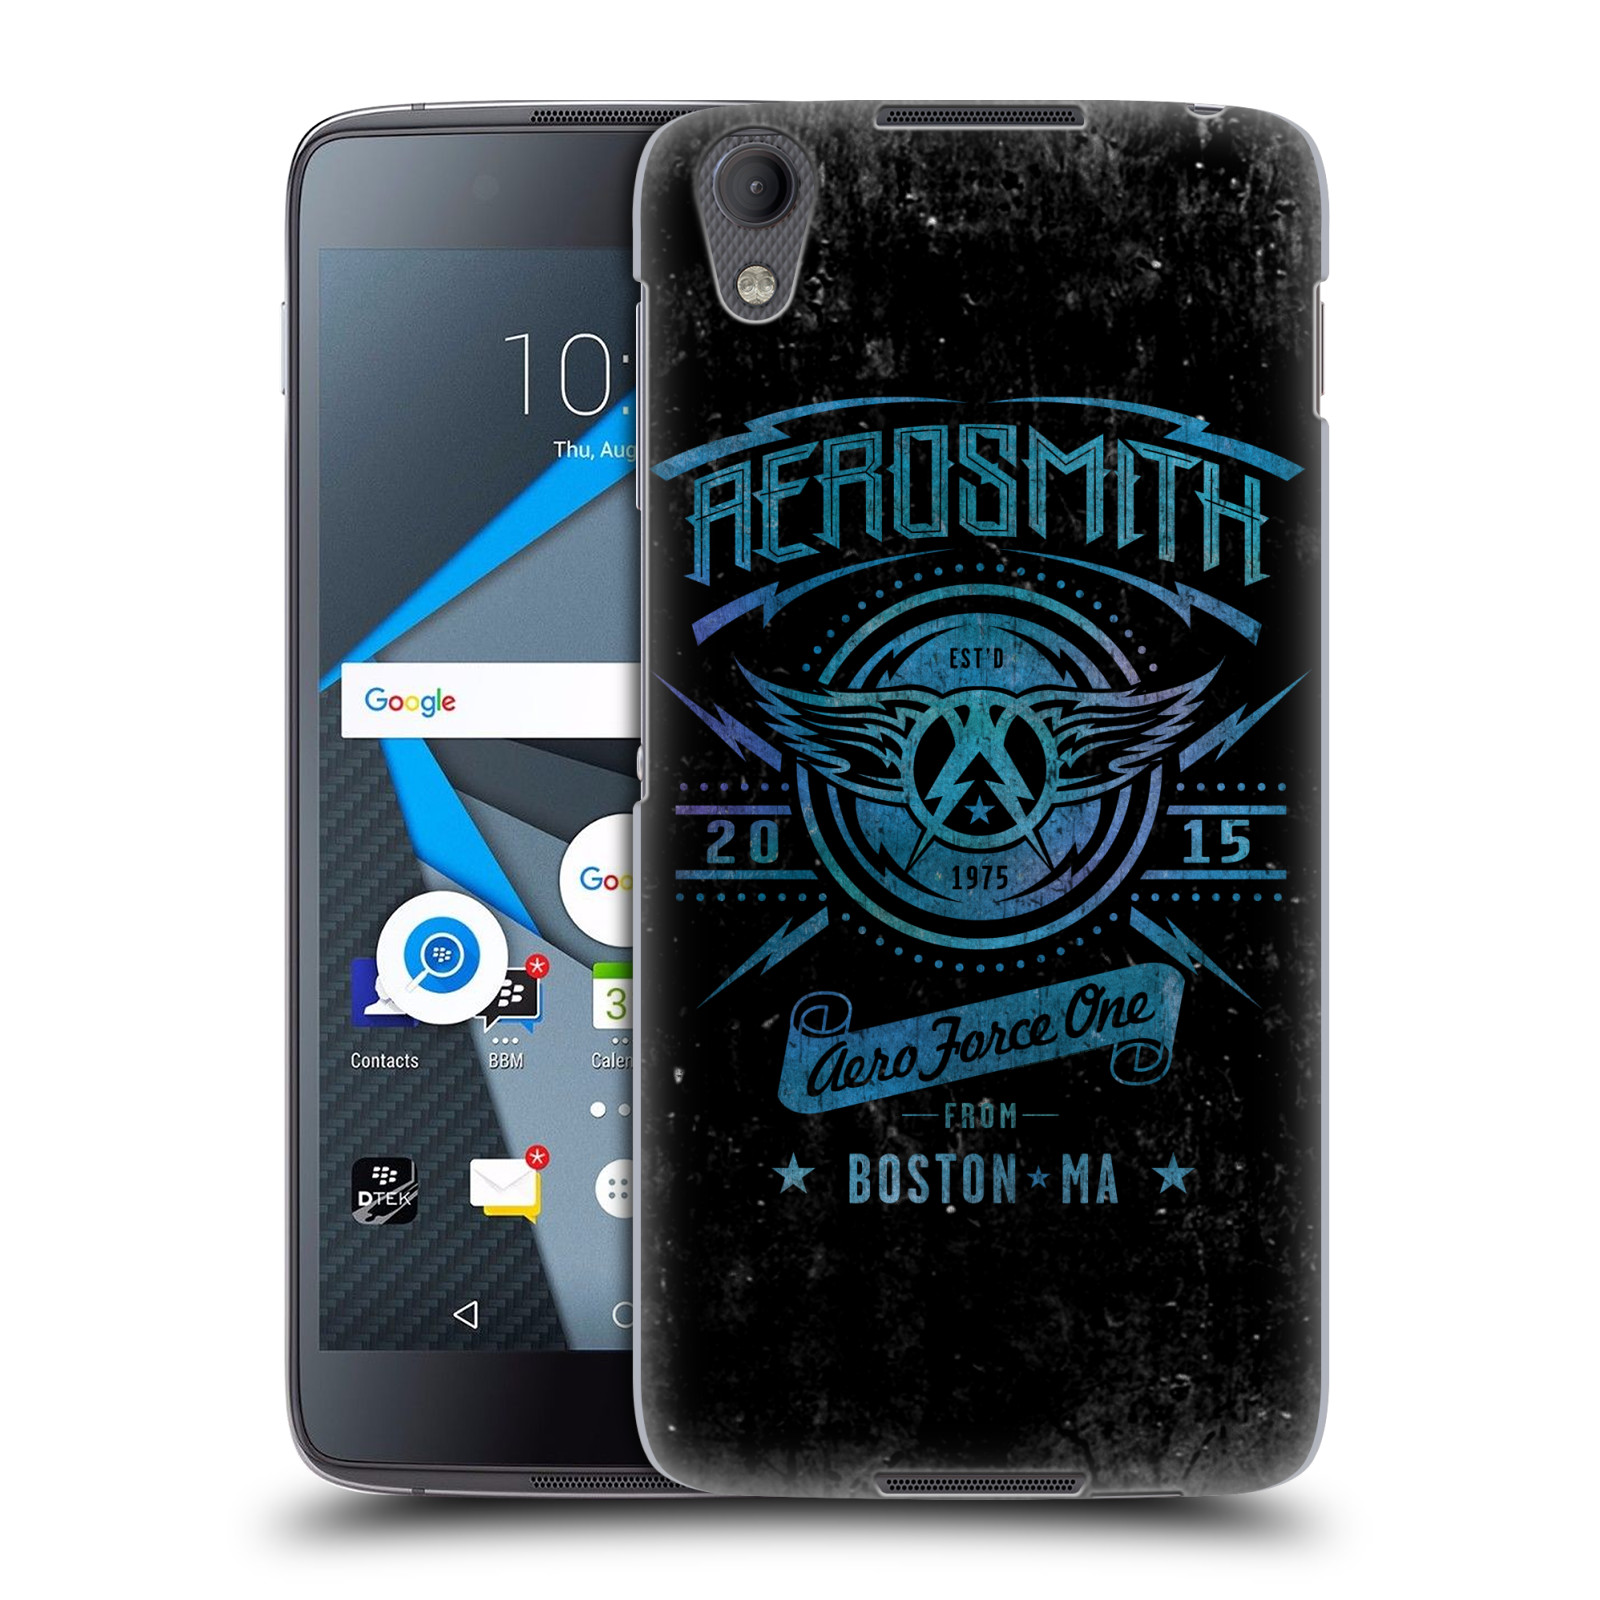 Plastové pouzdro na mobil Blackberry DTEK50 (Neon) - Head Case - Aerosmith - Aero Force One